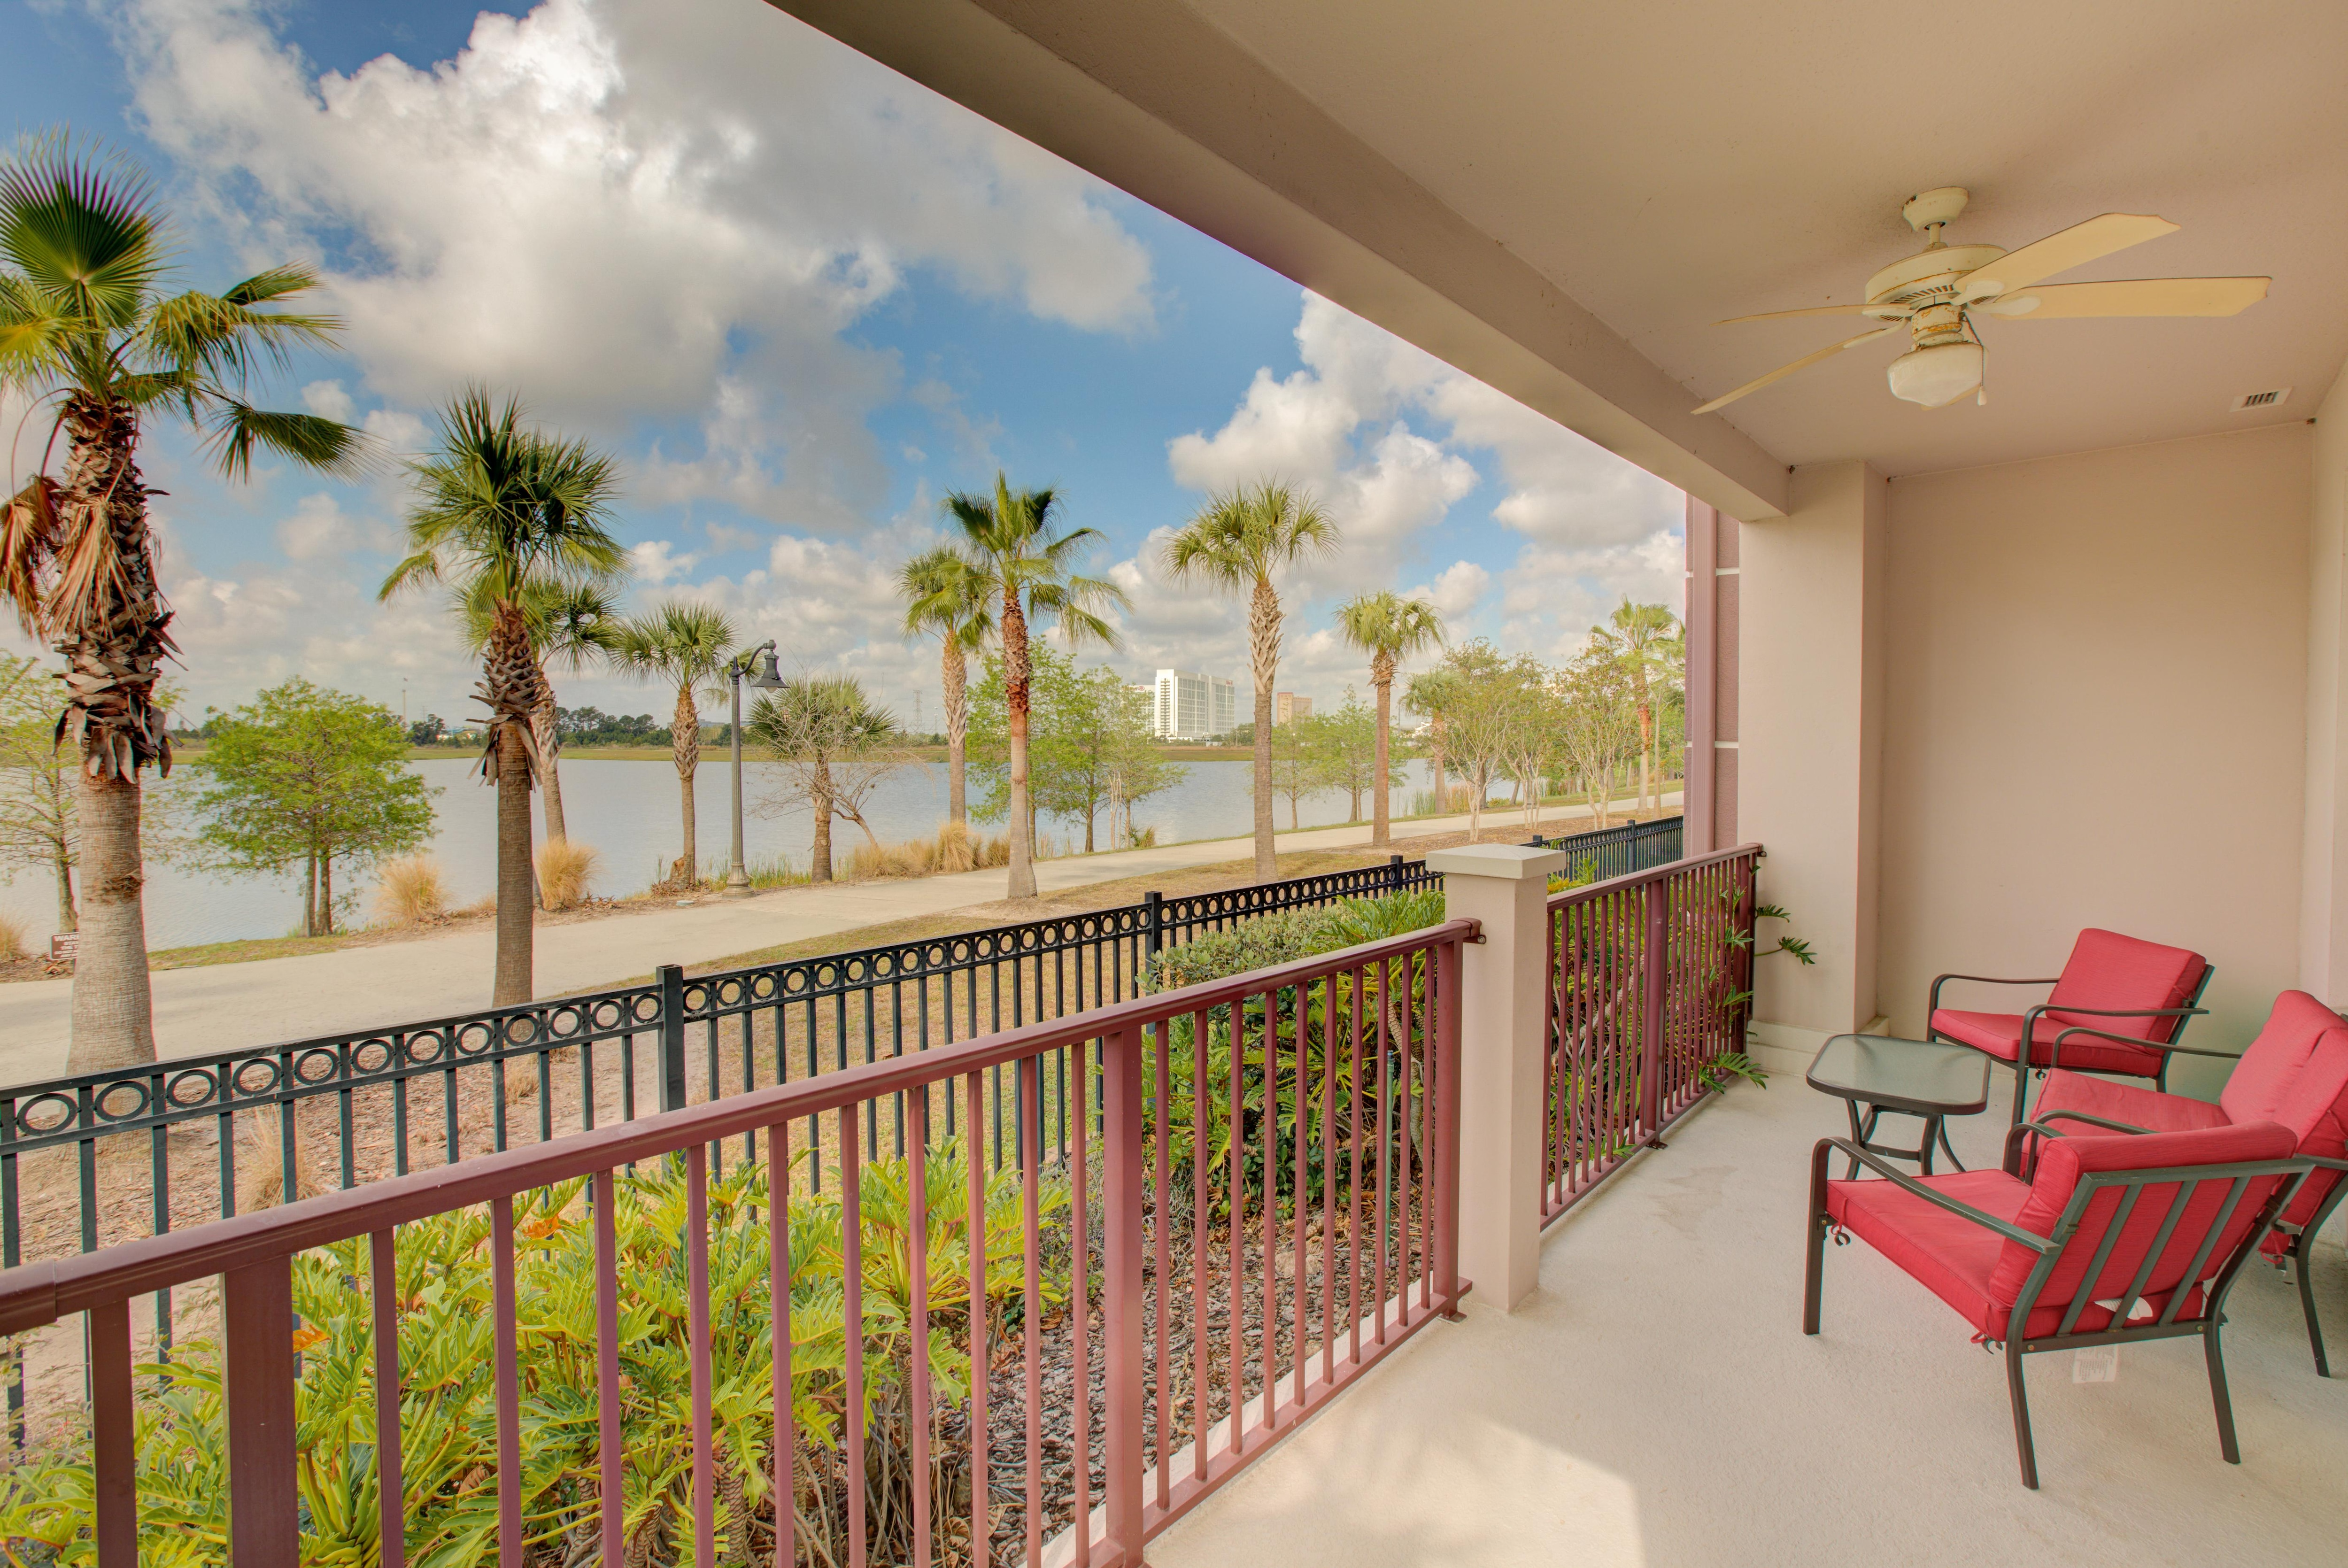 Property Image 1 - Spacious, Lake View Condo with Balcony; Near Clubhouse